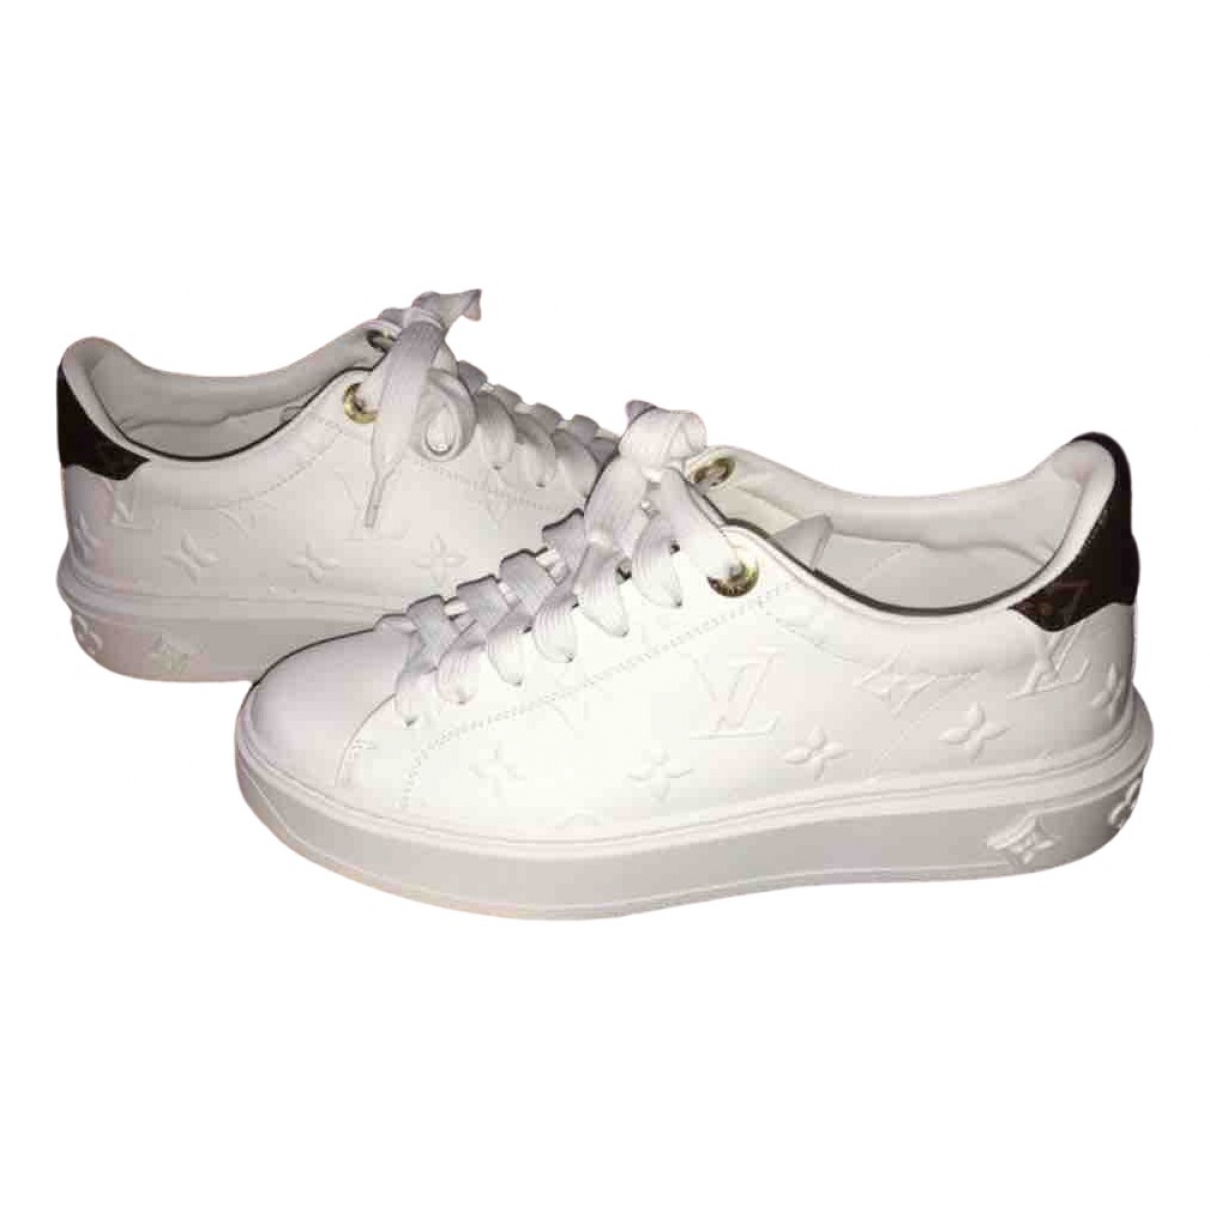 Louis Vuitton - Baskets TimeOut pour femme en cuir - blanc